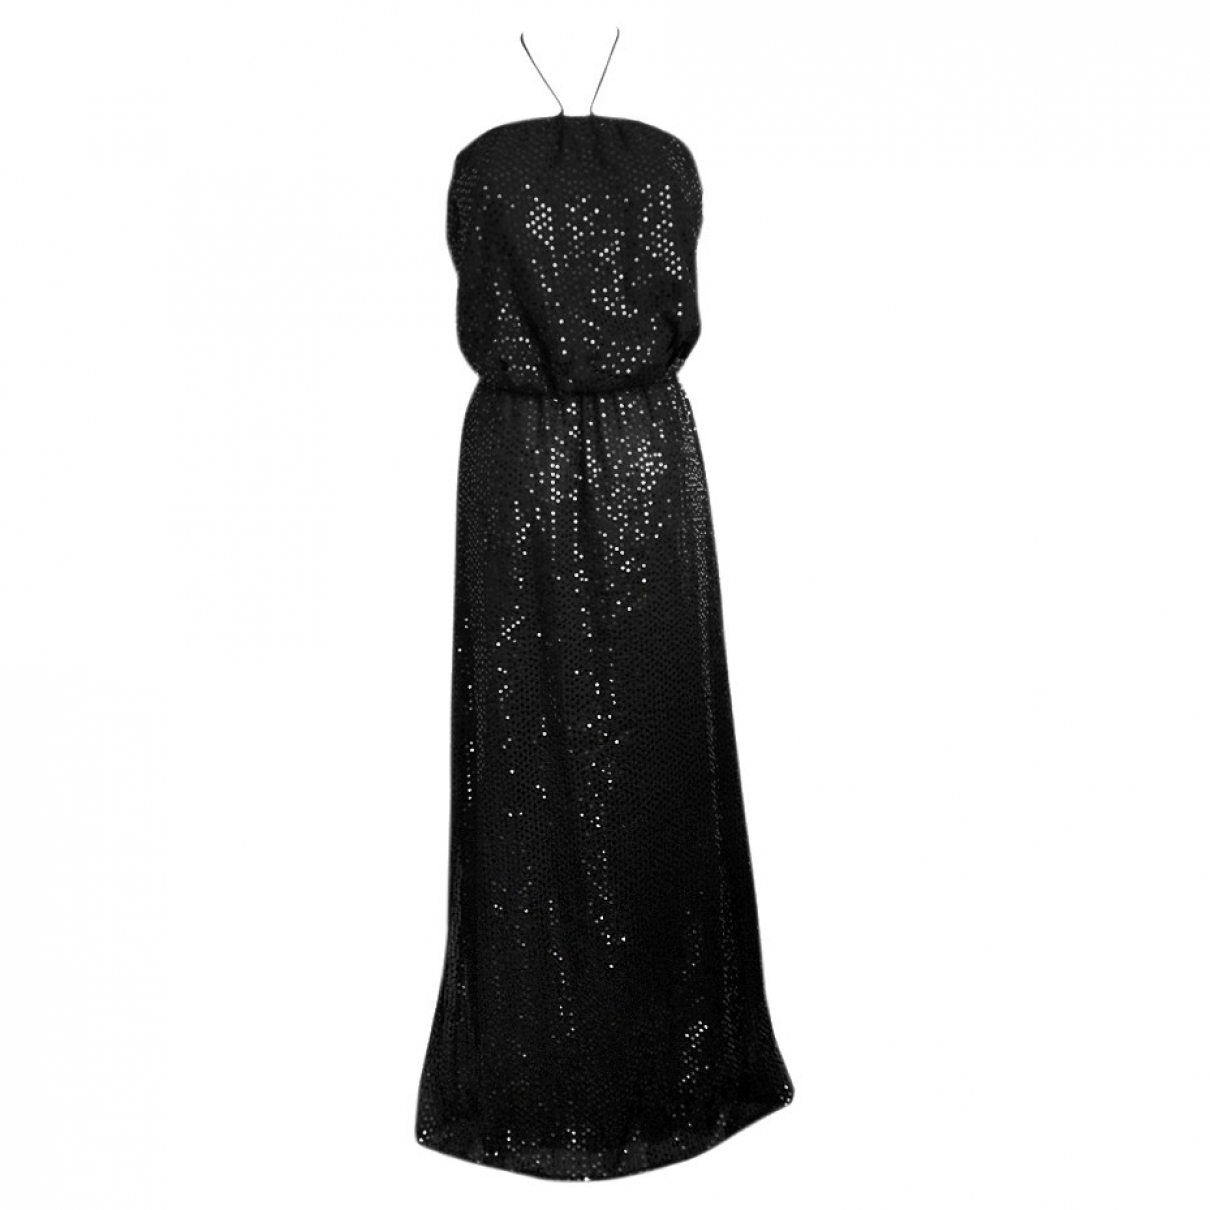 Armani Jeans \N Black dress for Women 40 IT